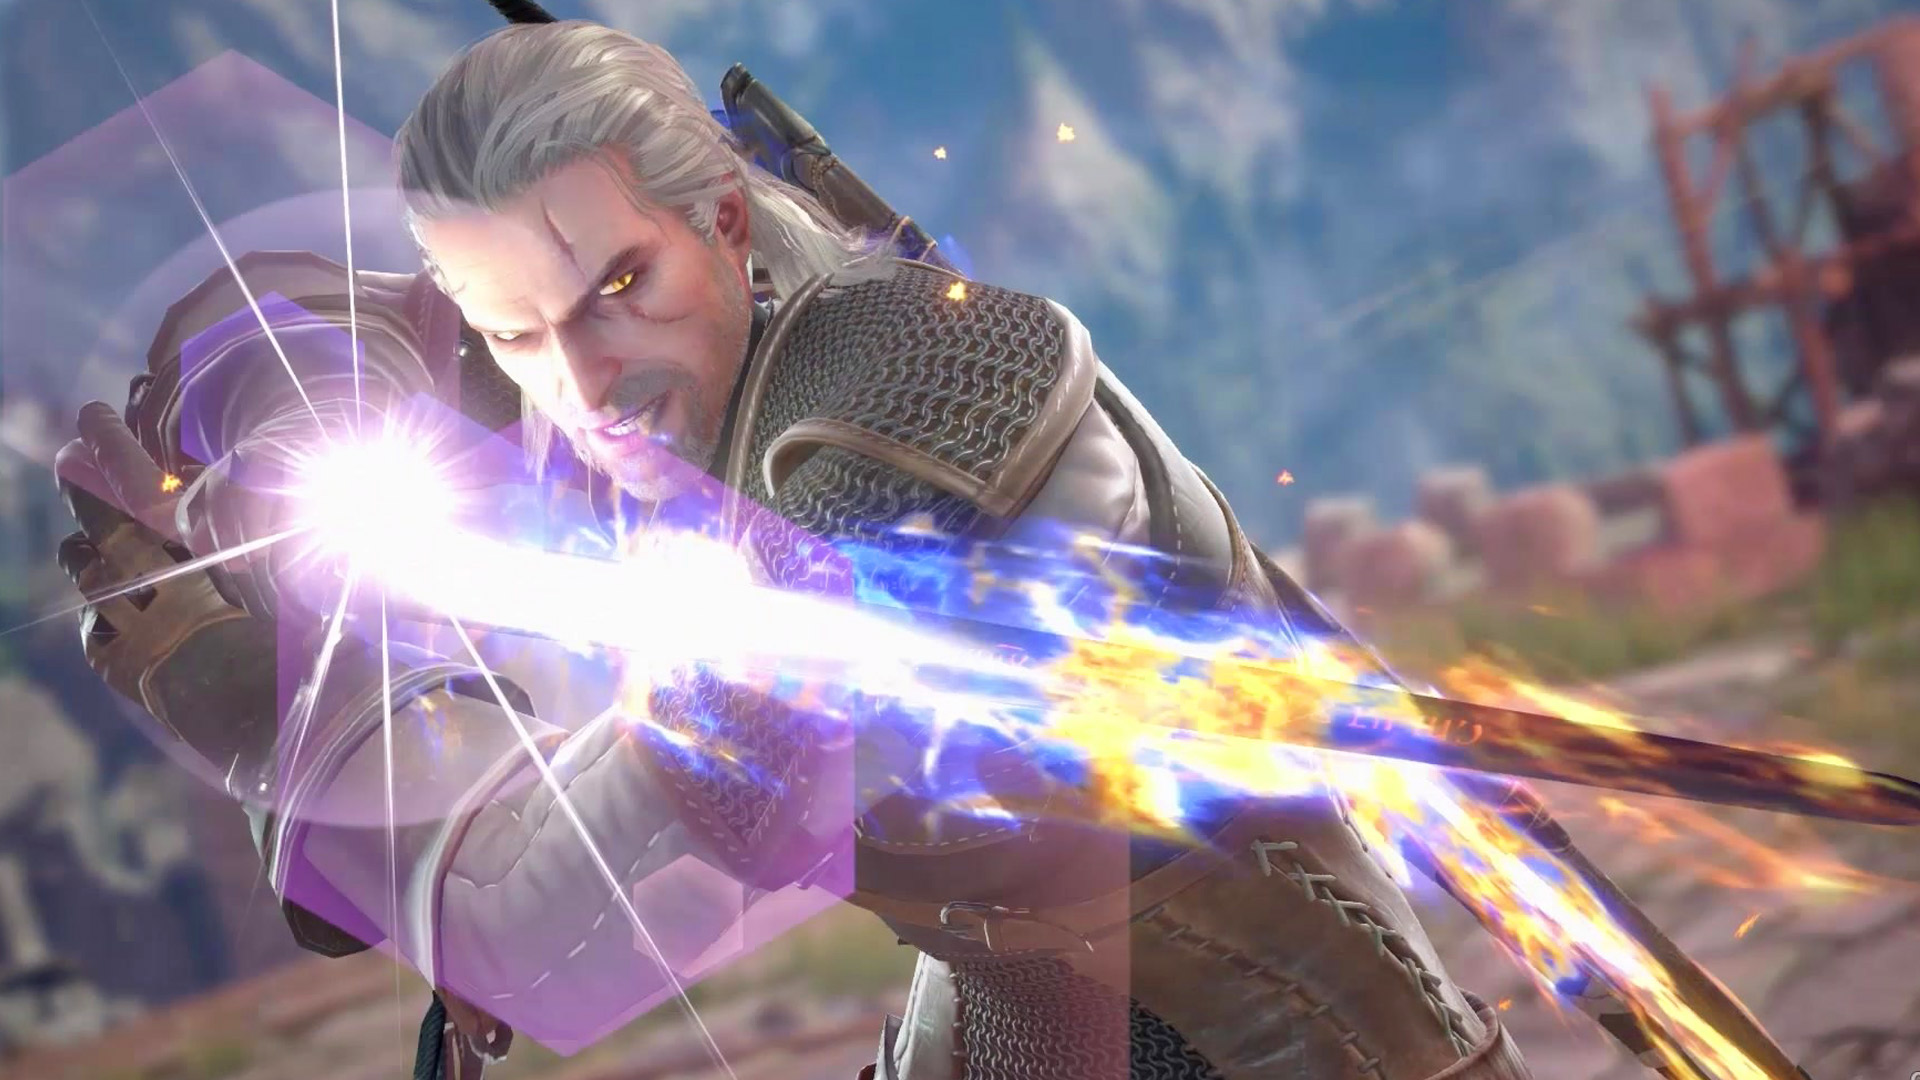 SoulCalibur VI: Transcending History, Souls and Swords